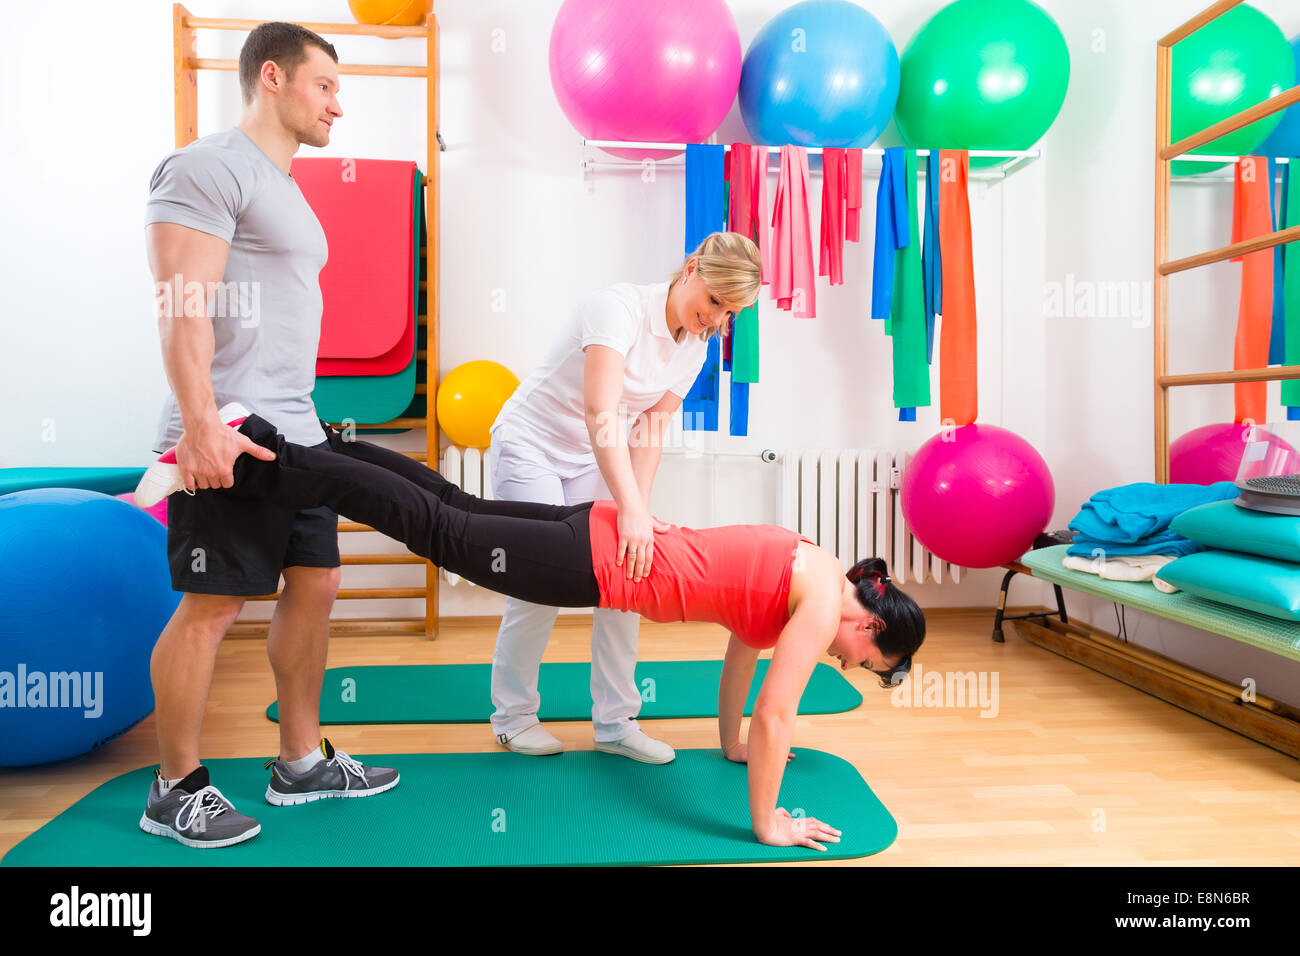 Patients at the physiotherapy doing physical exercises with therapist - Stock Image